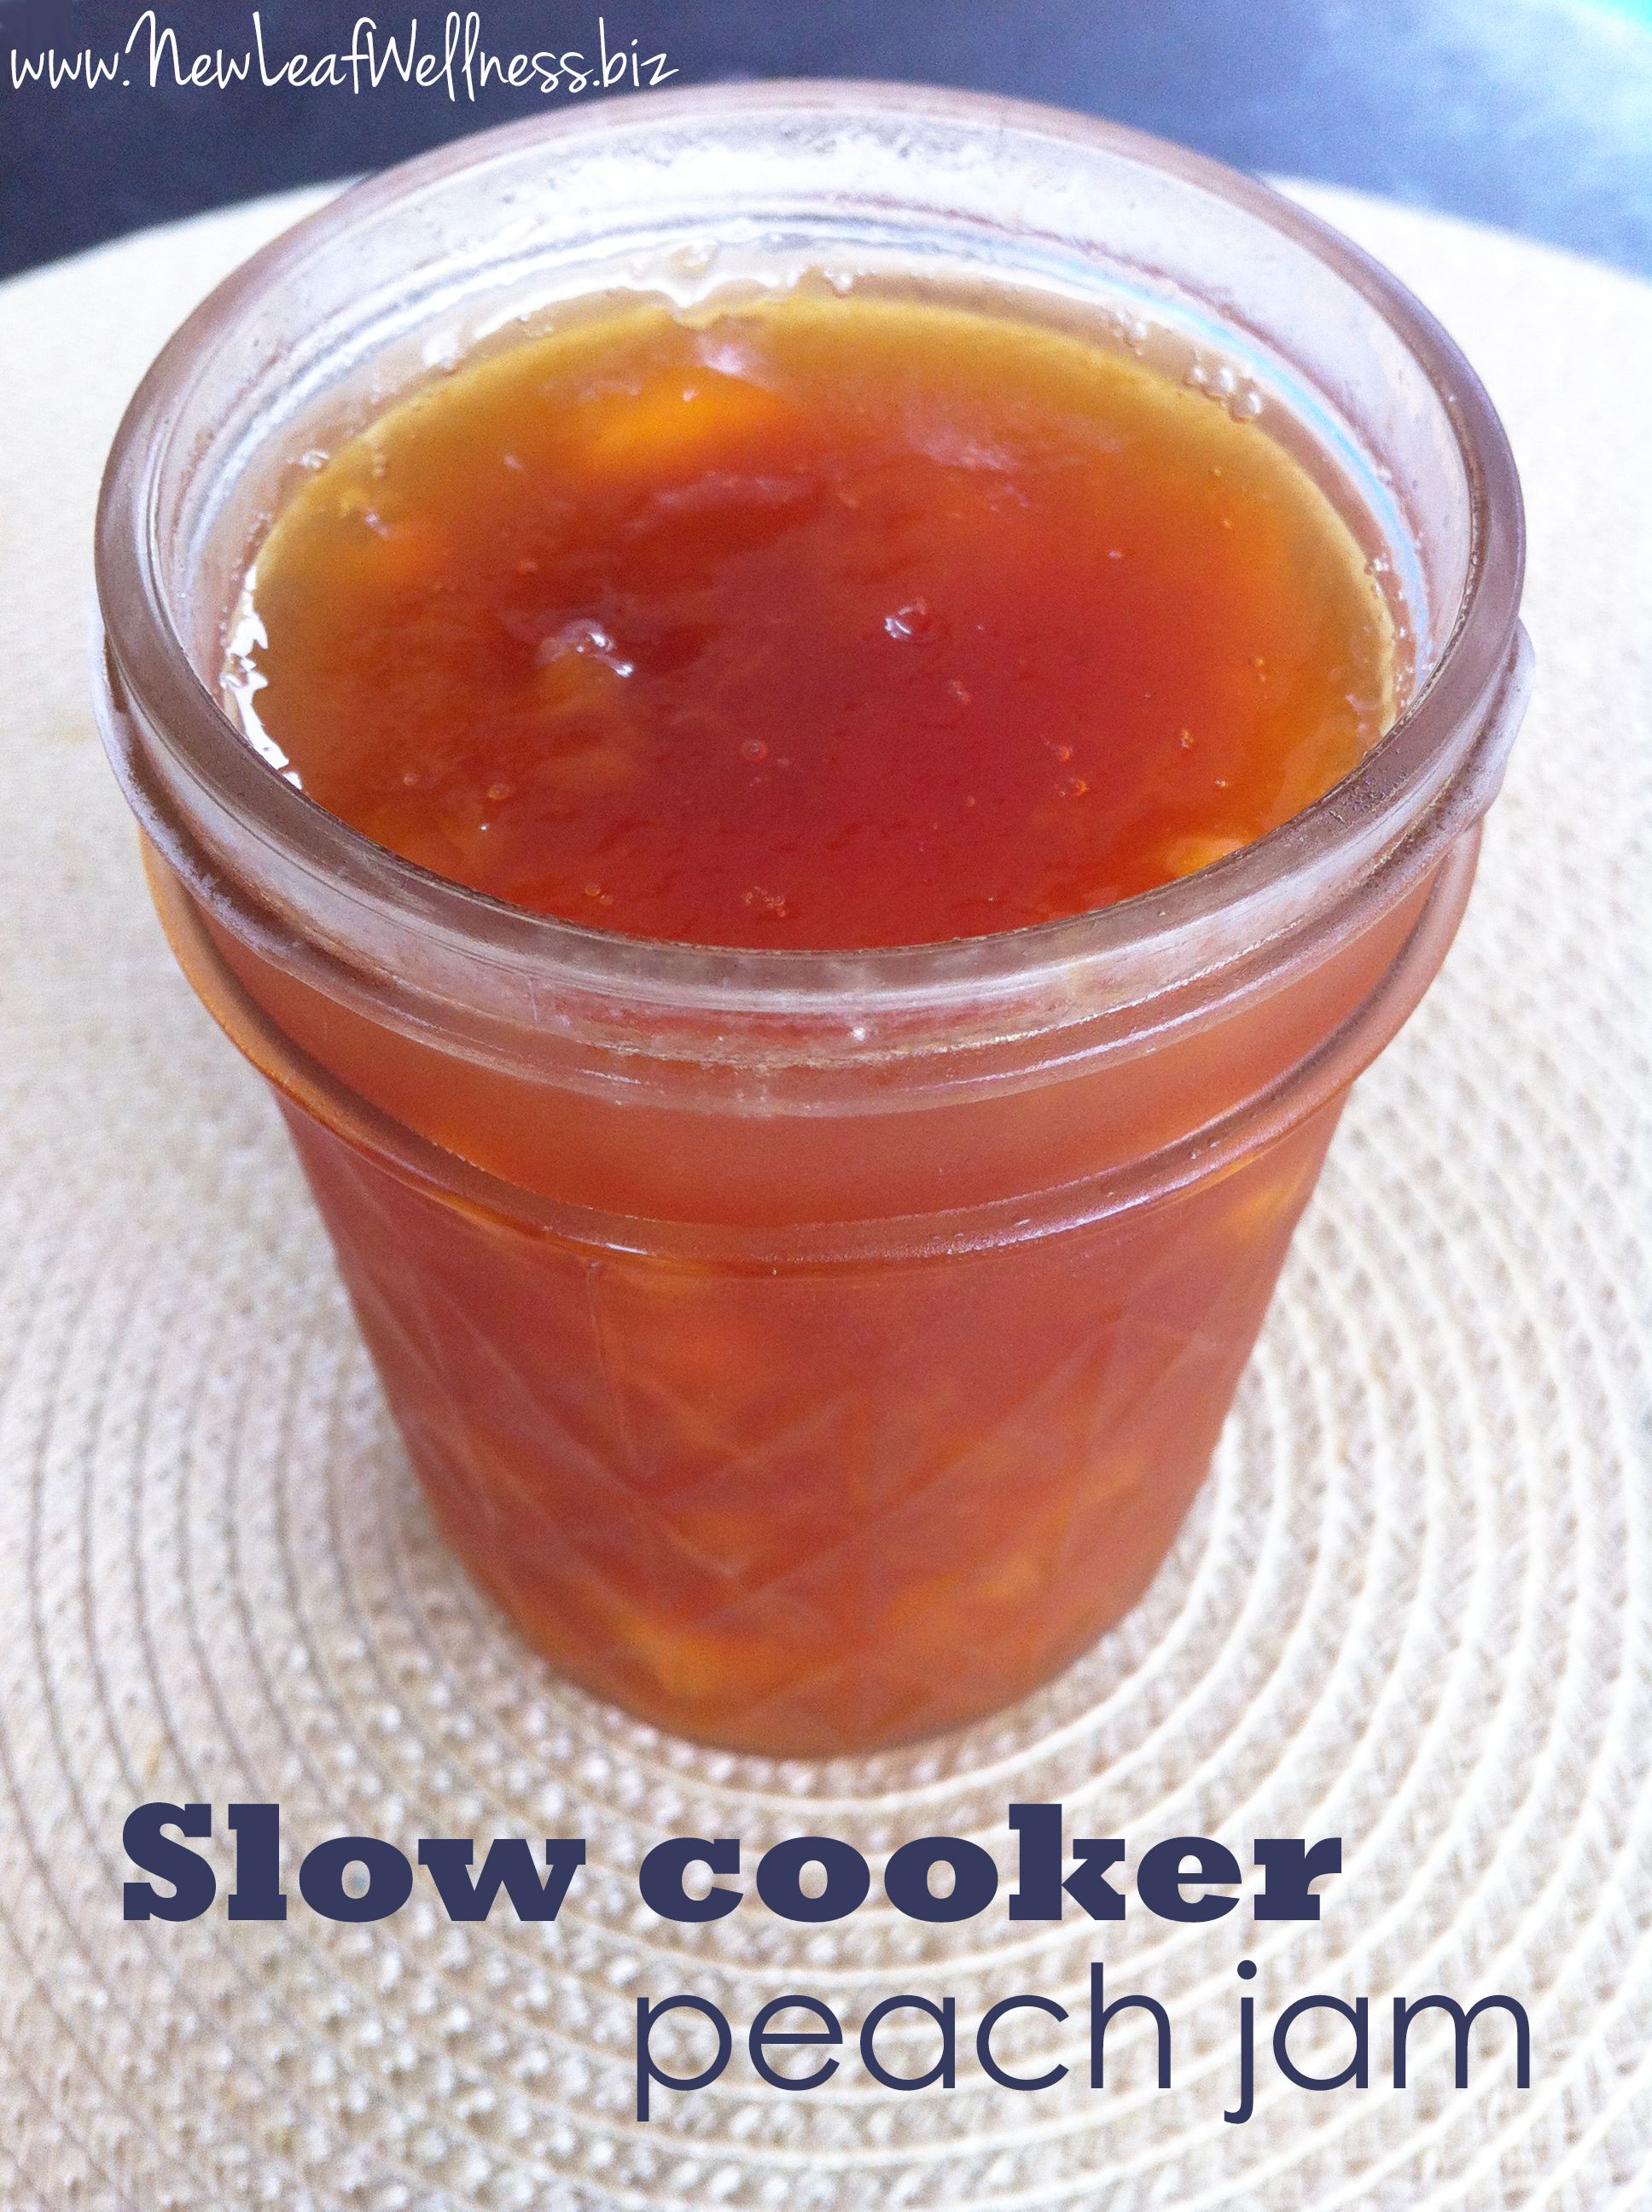 Peach slow cooker jam recipe new leaf wellness for Peach preserves no pectin